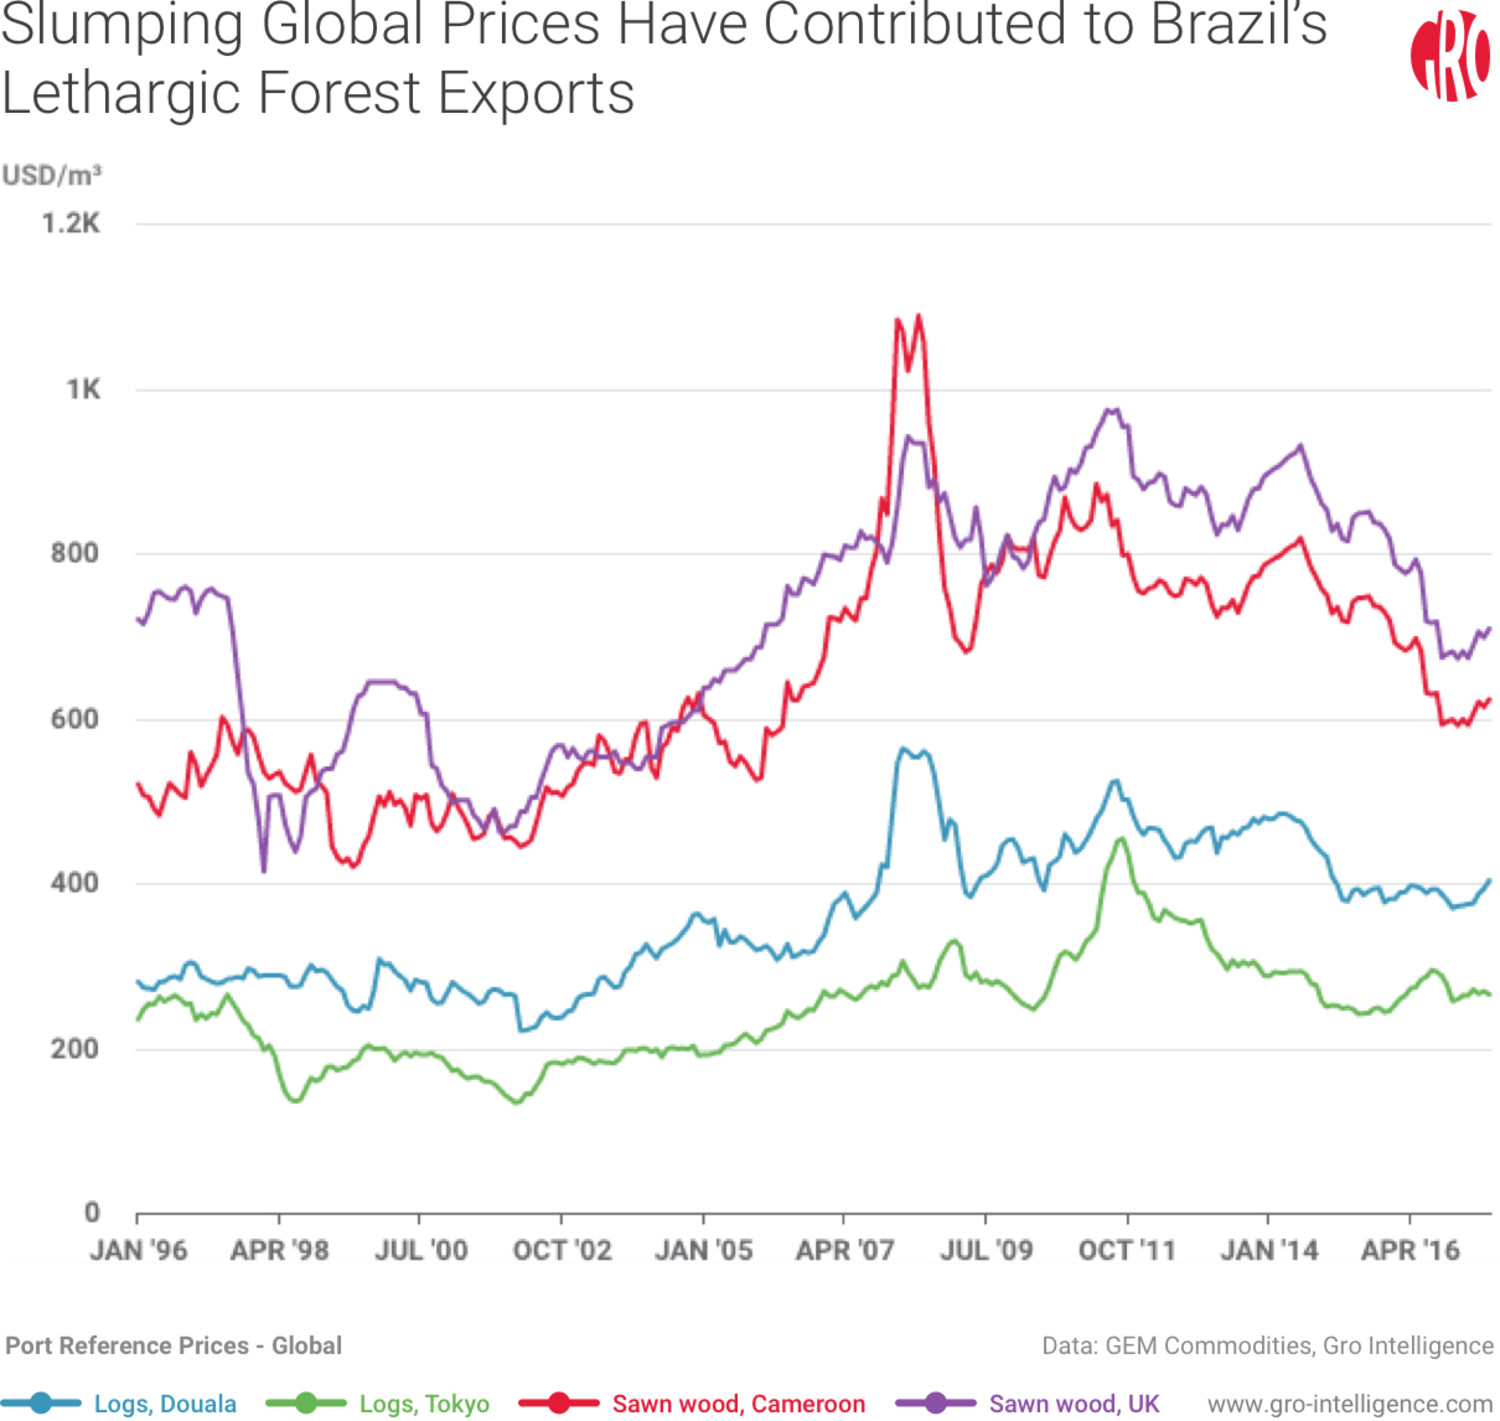 Slumping Global Prices Have Contributed to Brazil's Lethargic Forest Exports